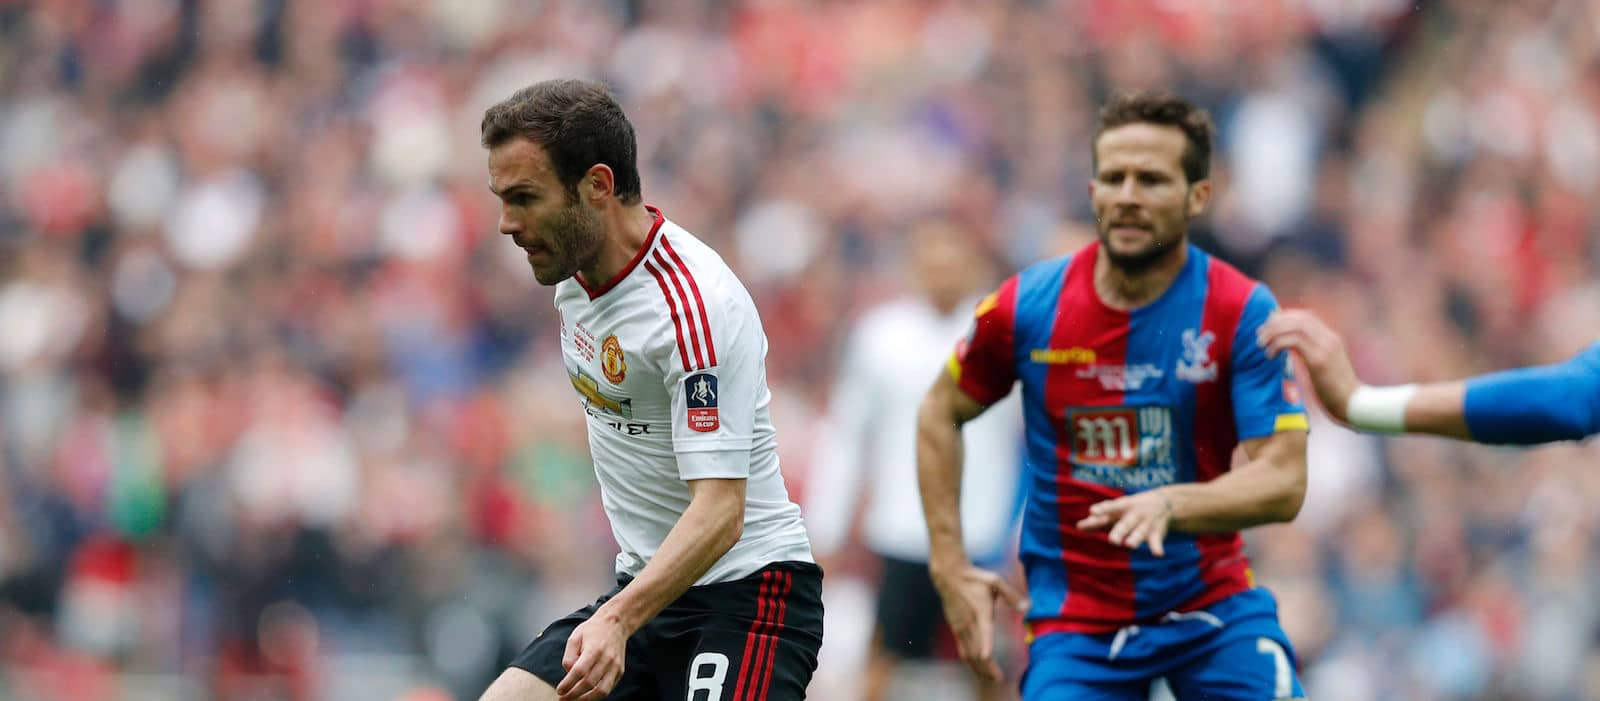 Manchester United players want Juan Mata to remain at the club – report